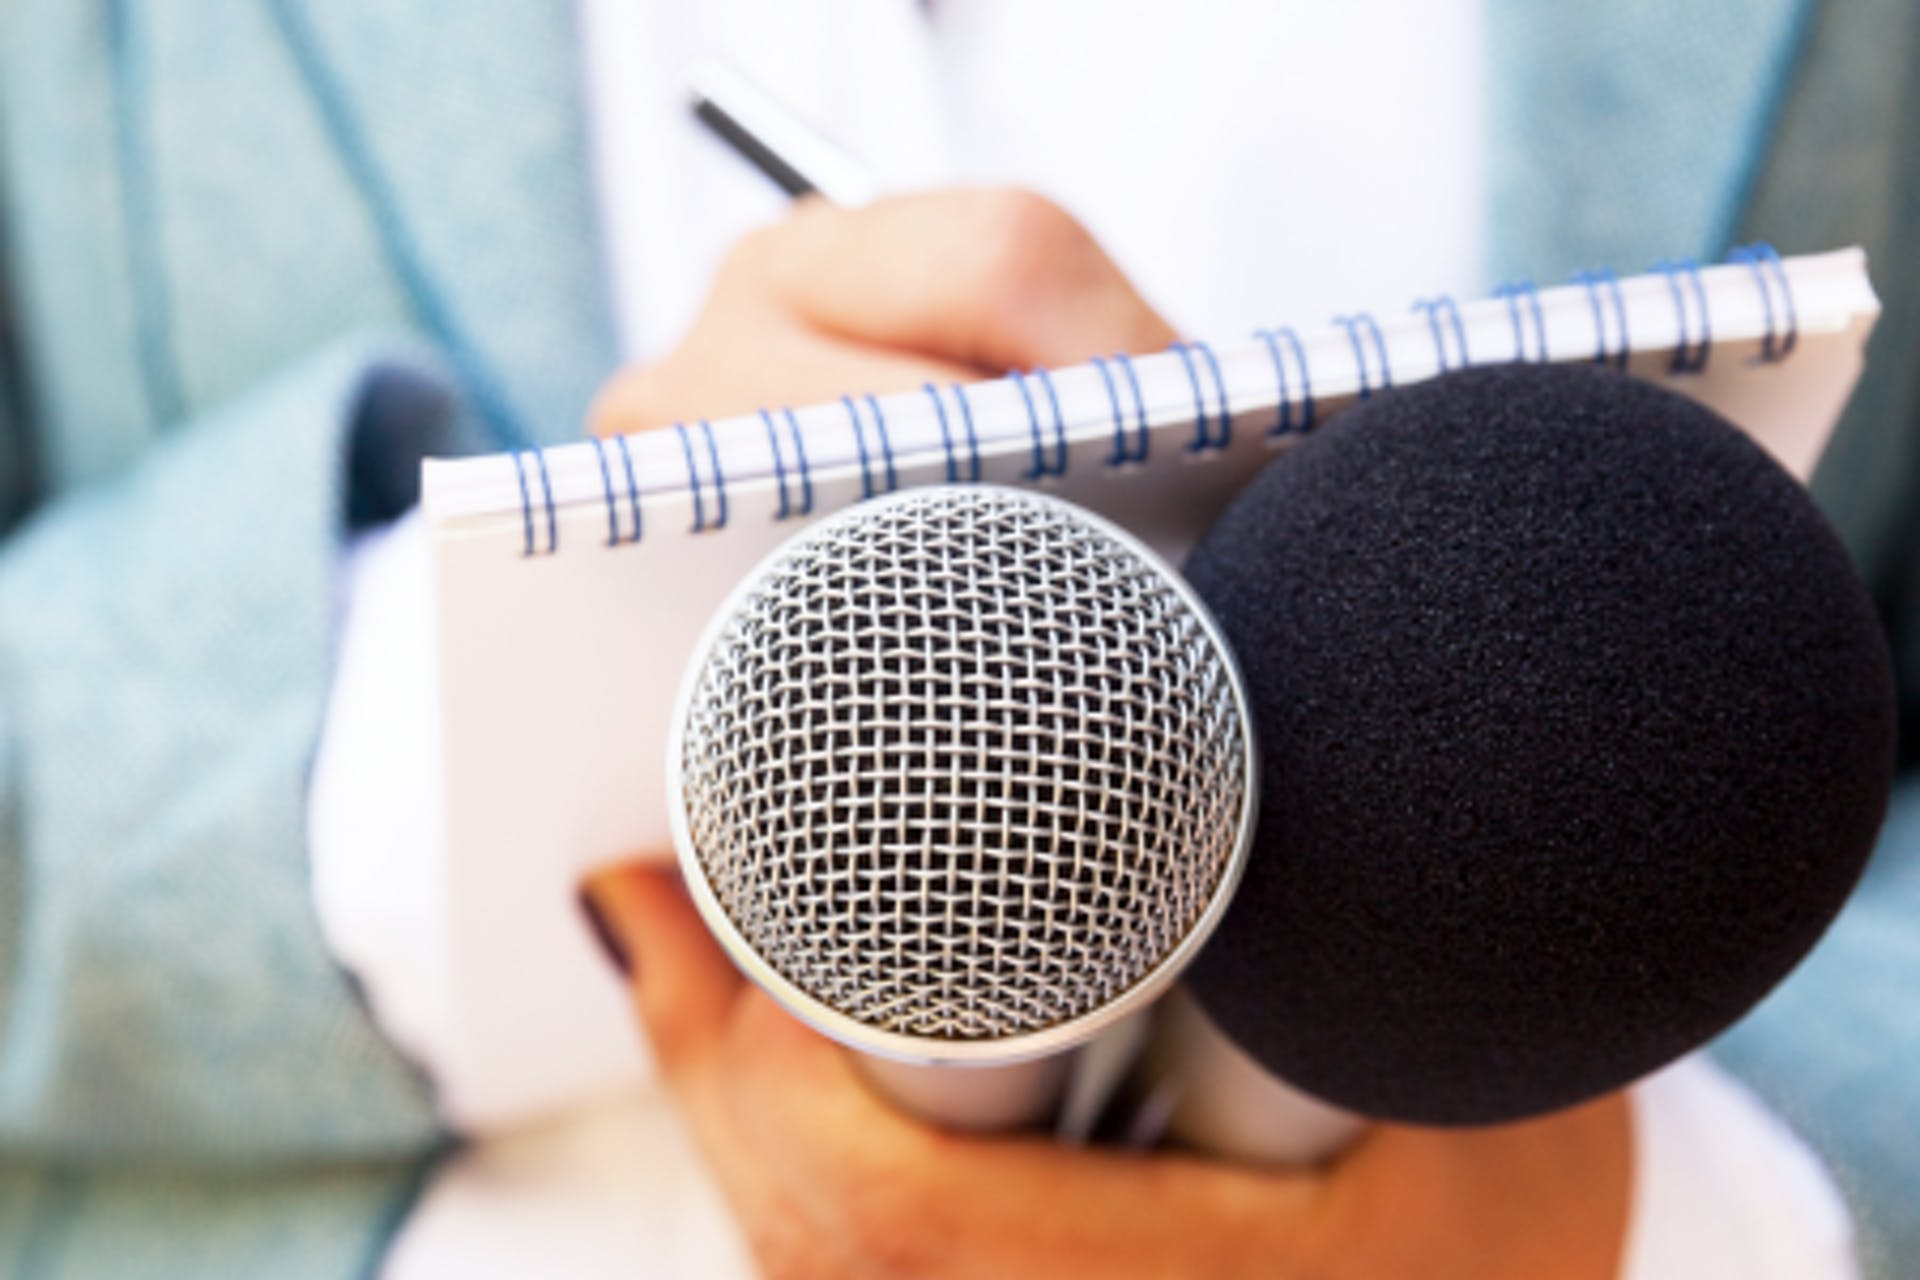 A reporter writing in a notepad while holding two microphones